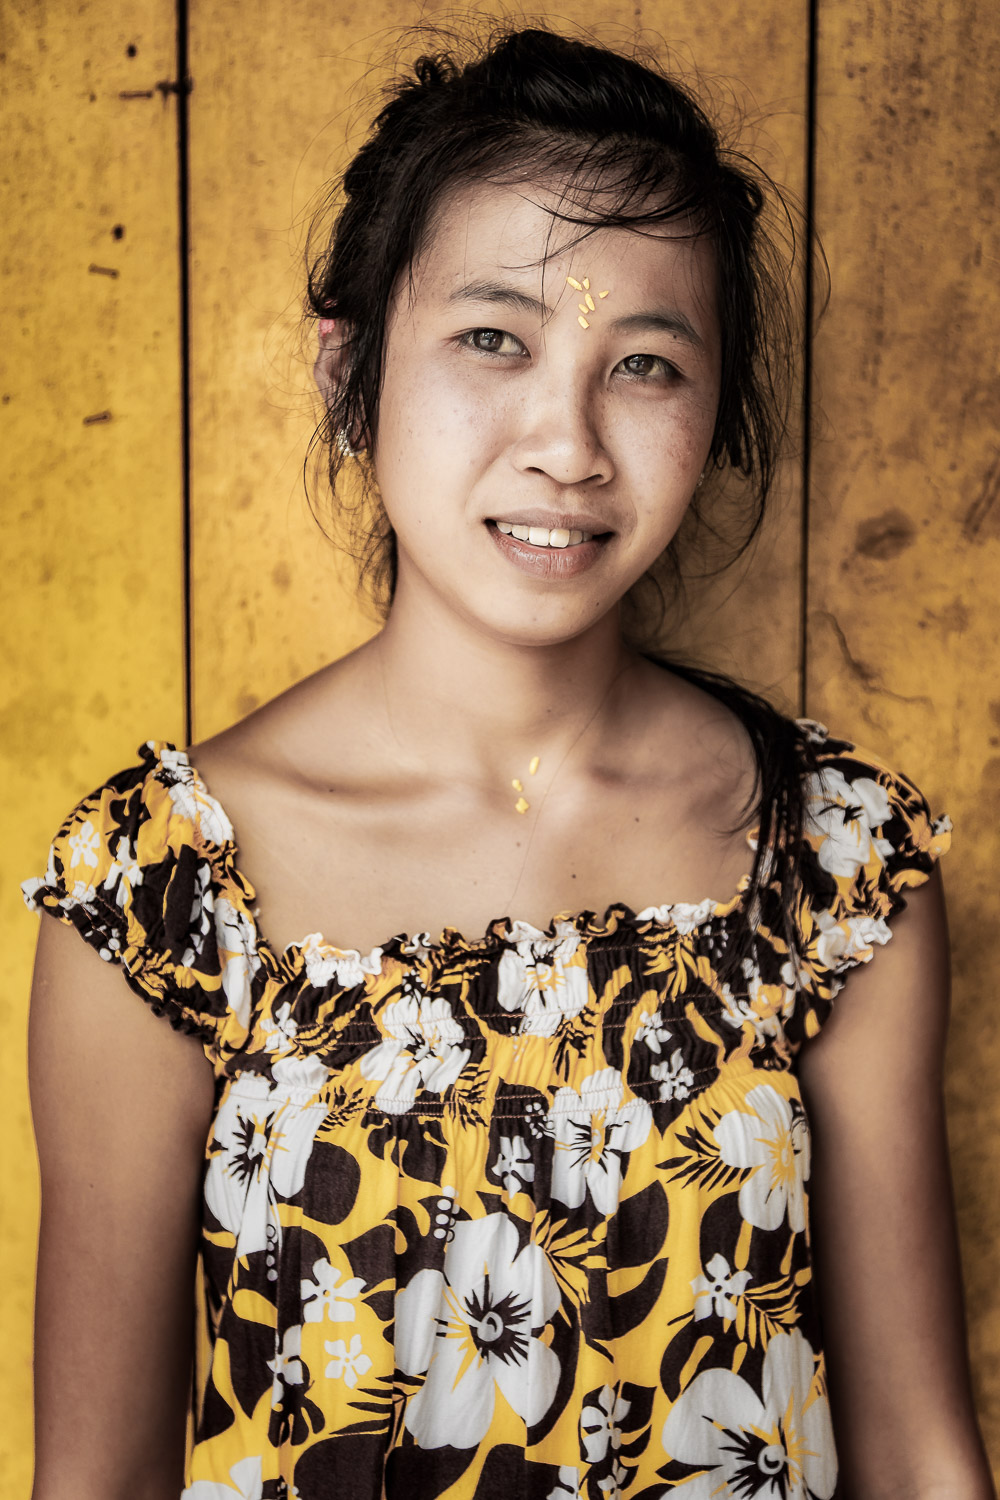 This version of the image of a    young Balinese woman    dressed in yellow and standing against a yellow painted wall in rural    Bali, Indonesia    features a more desaturated color palette in addition to a vignette to darken the areas of the image surrounding her face.